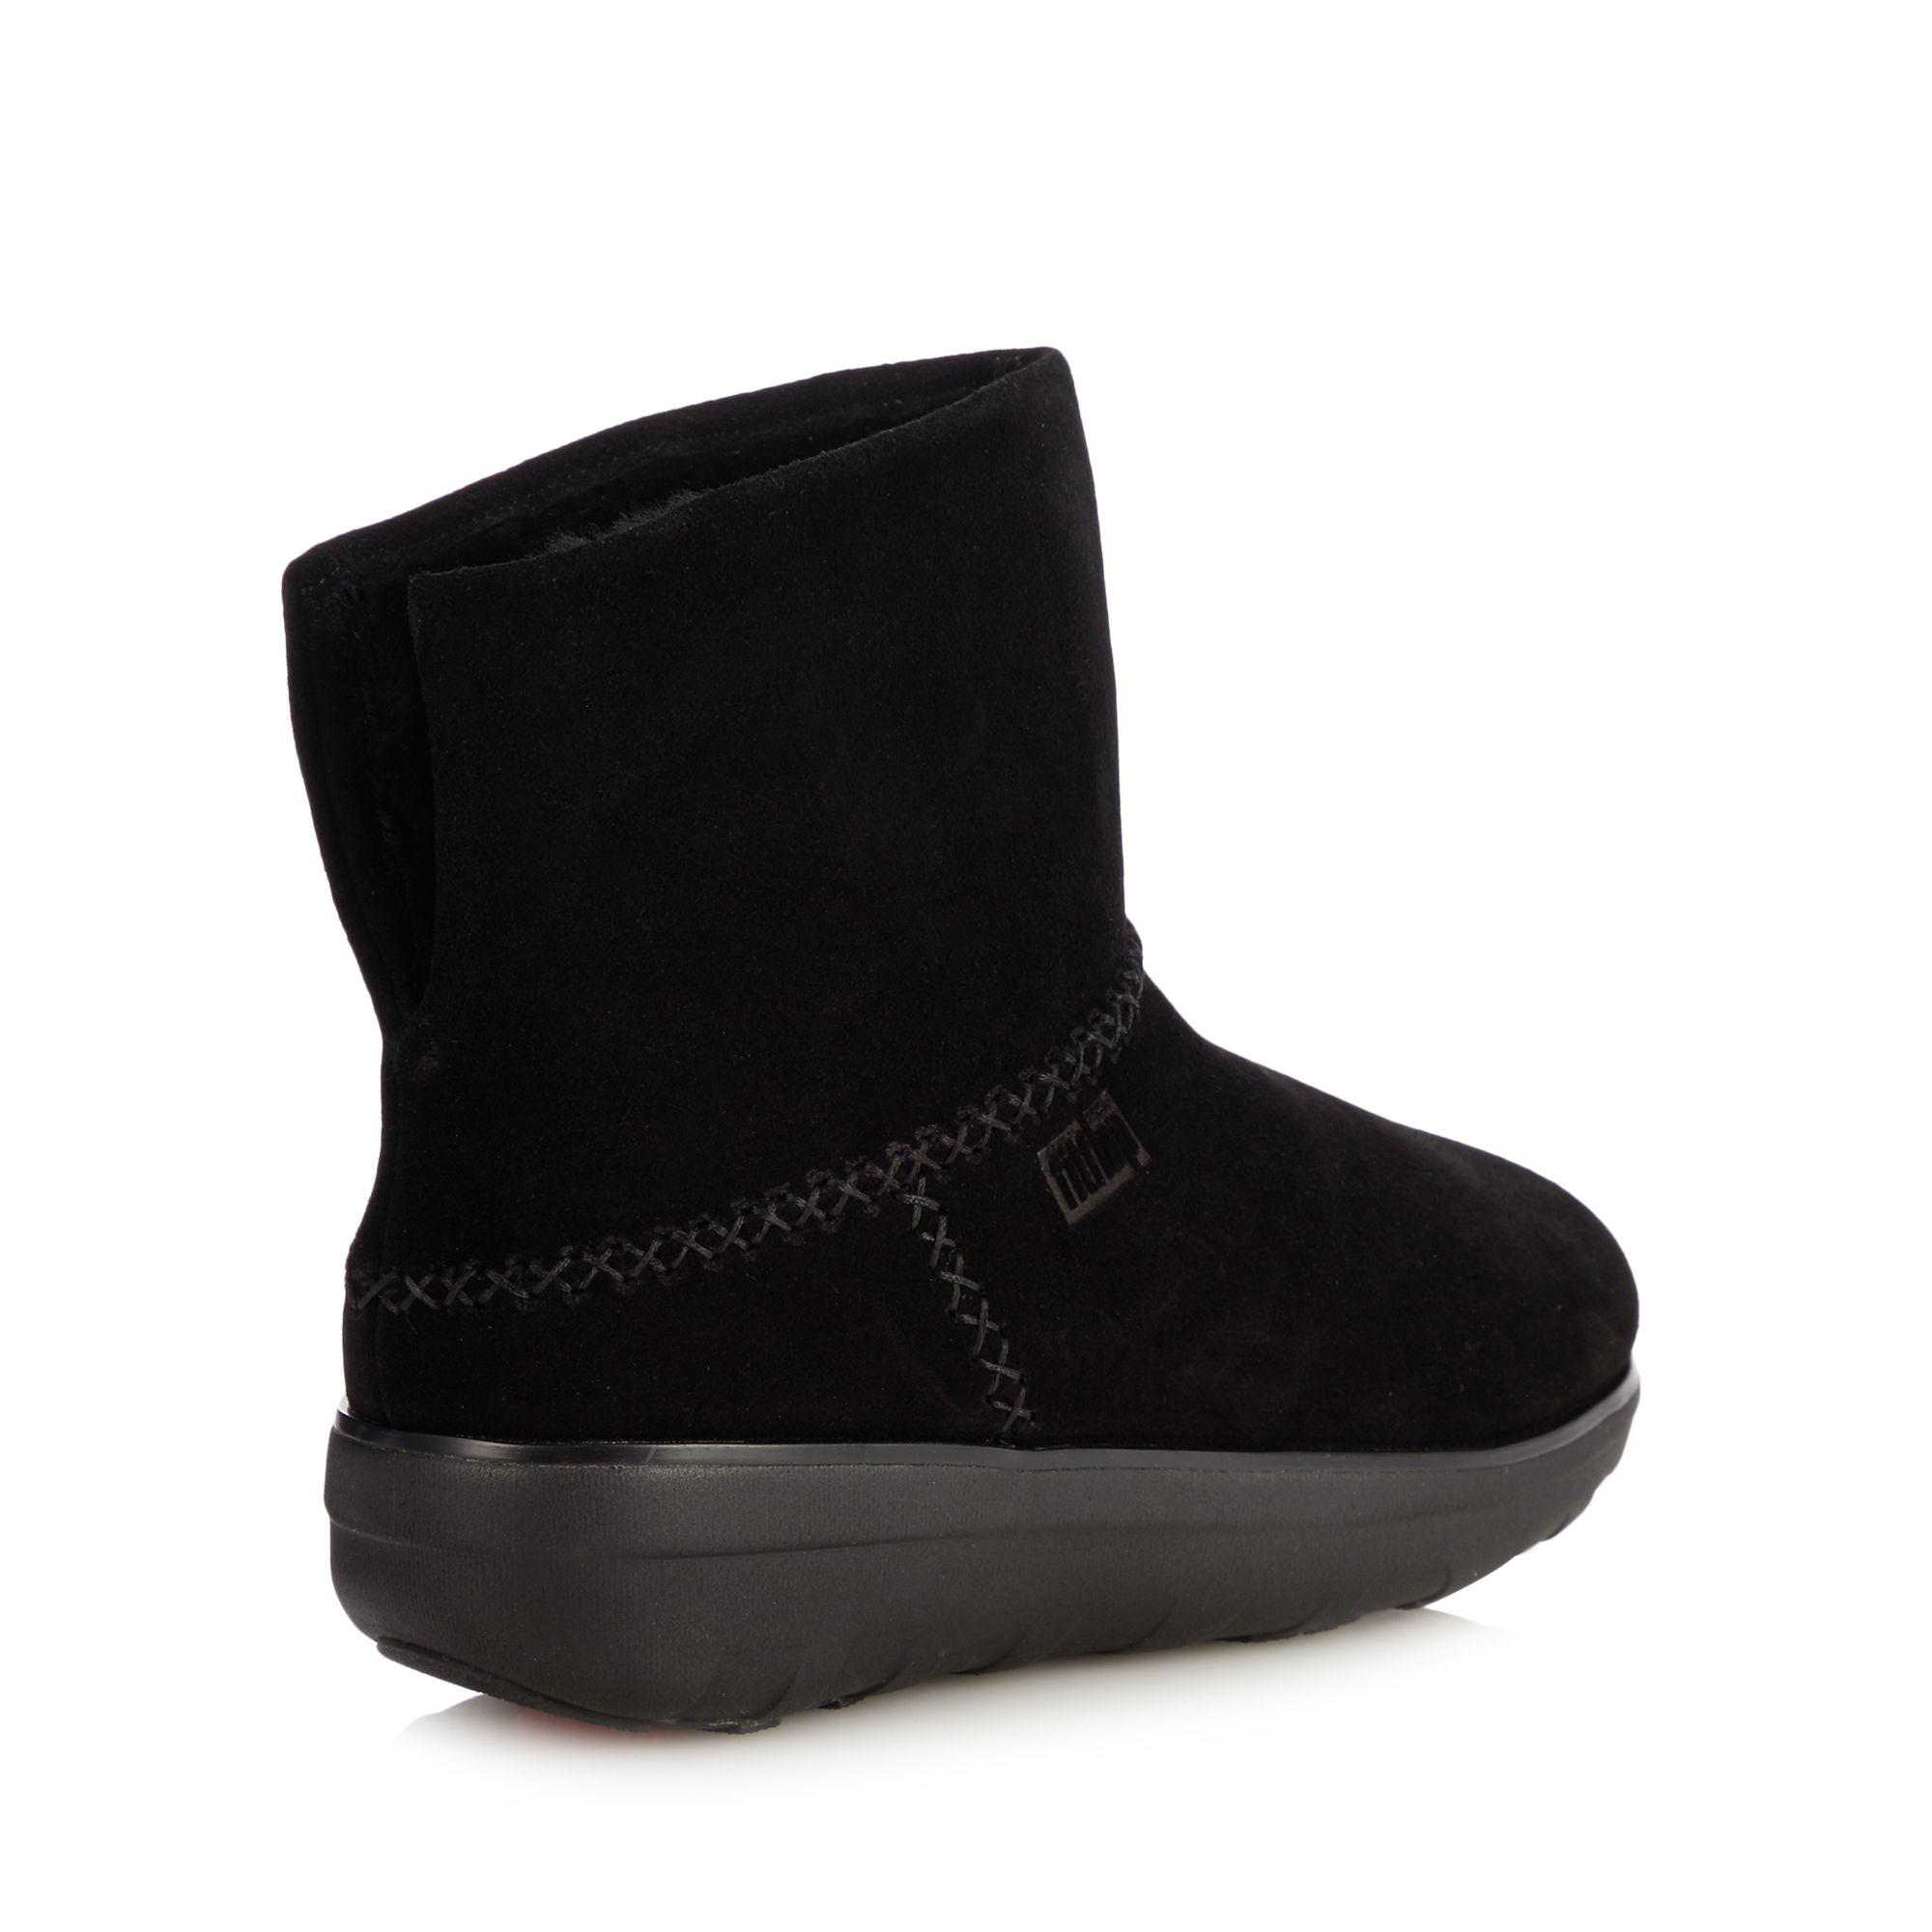 646ee0527f470d Fitflop - Black Suede  mukluk Shorty Ii  Ankle Boots - Lyst. View fullscreen